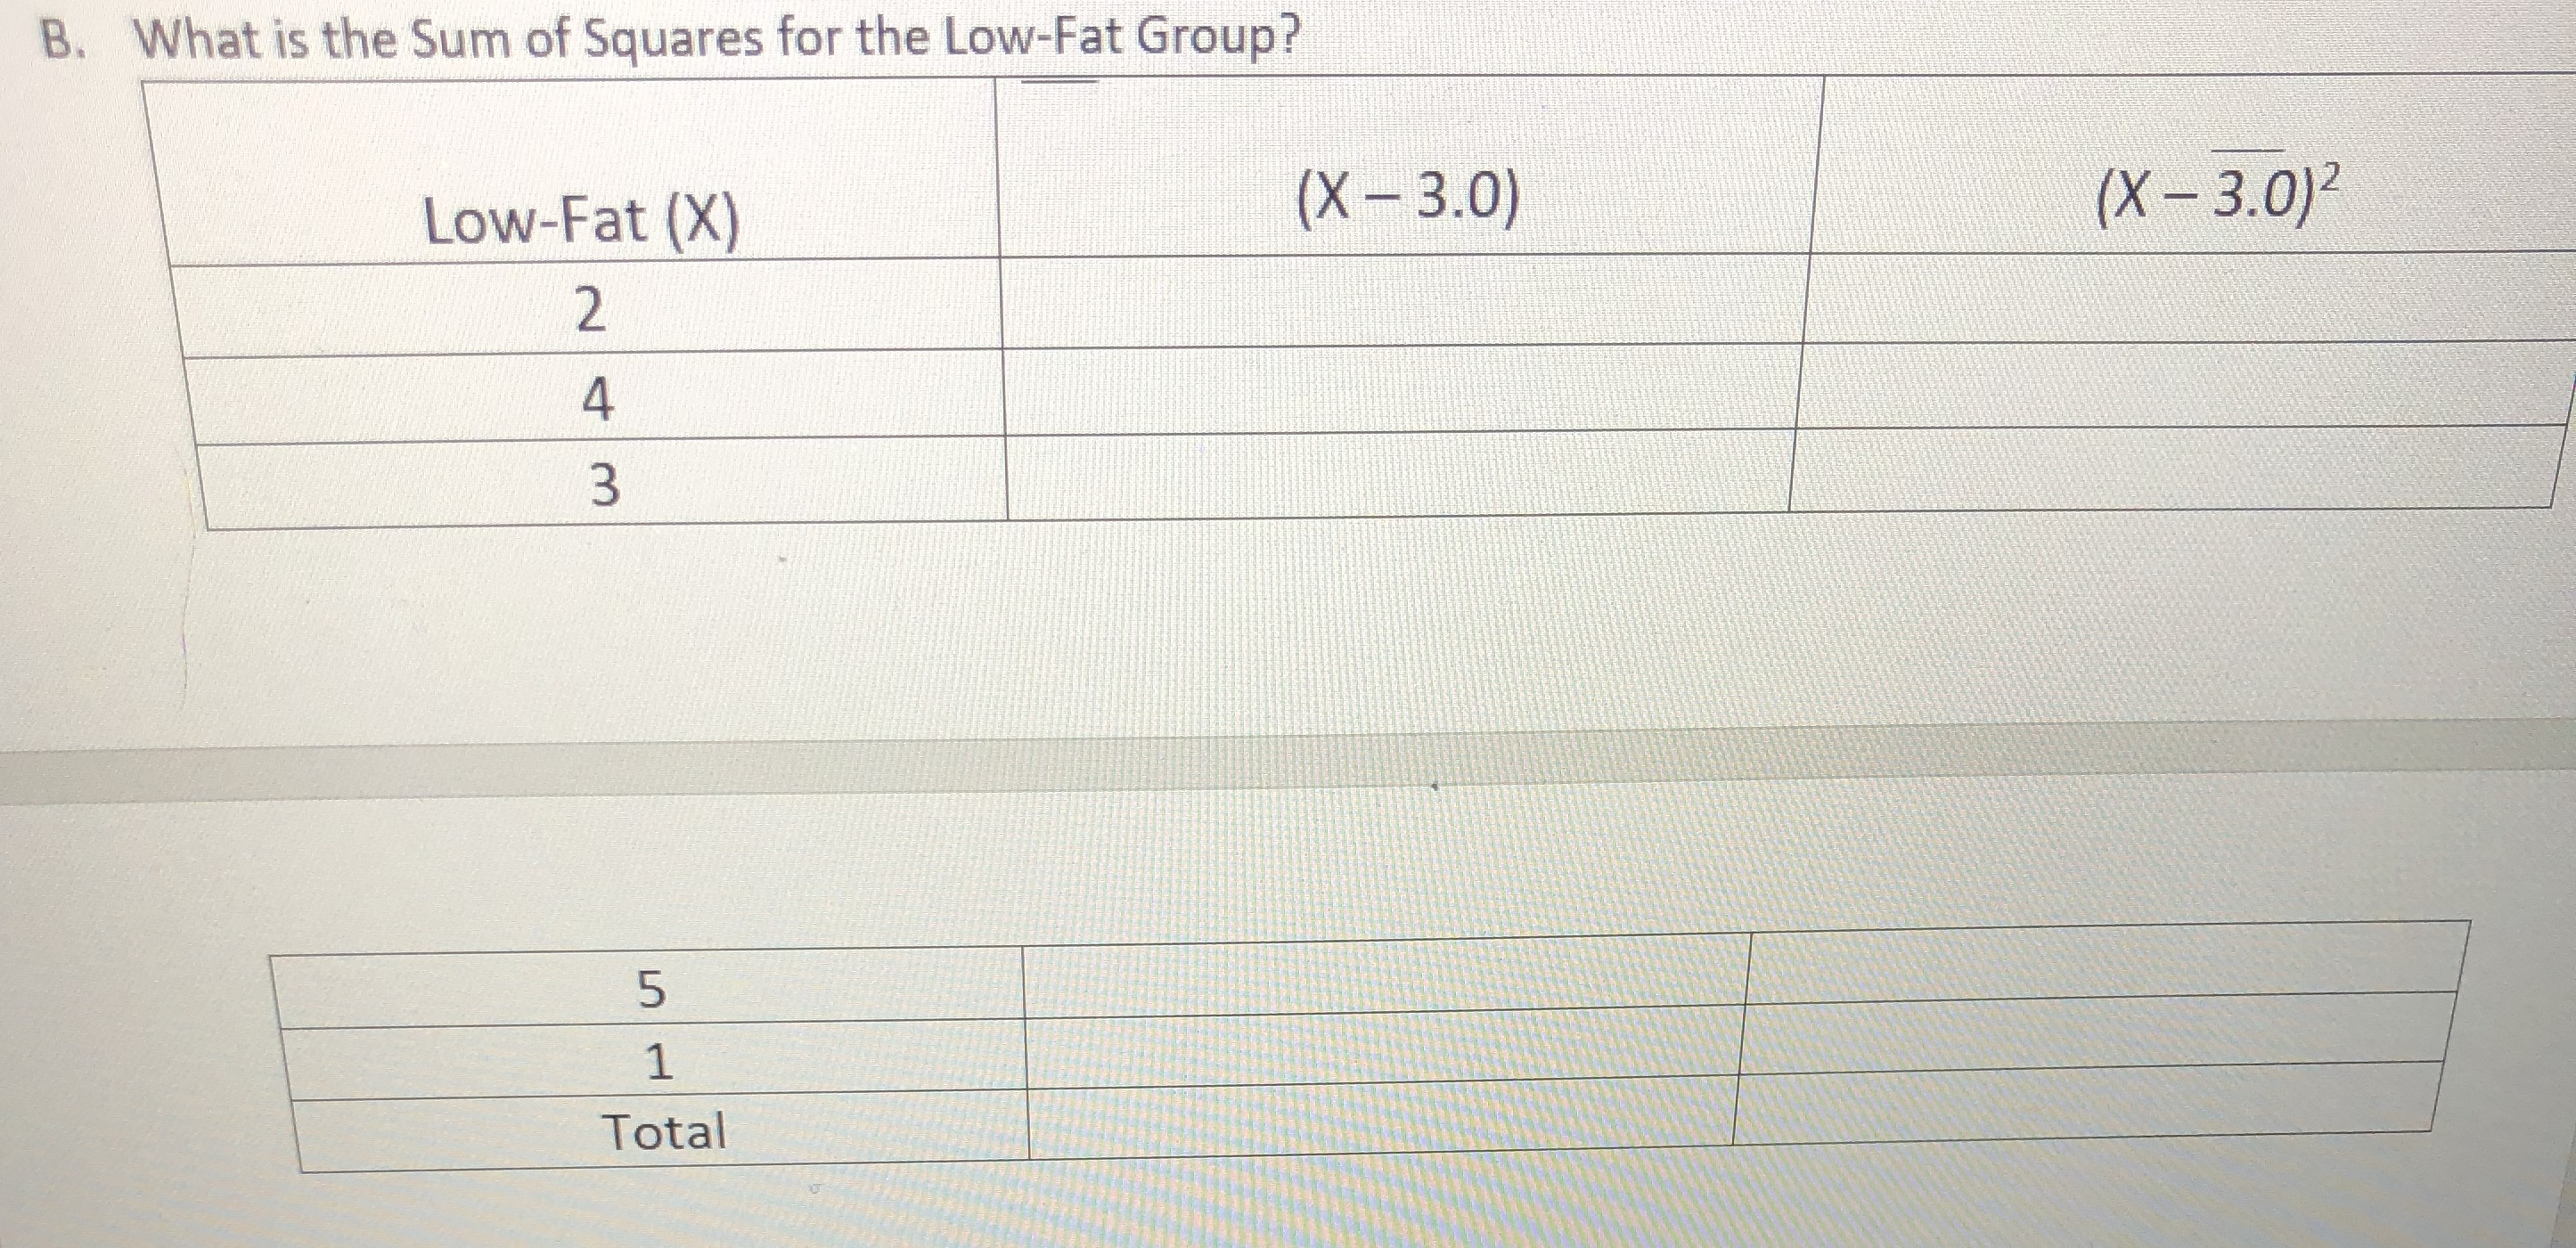 What is the Sum of Squares for the Low-Fat Group? B. (X-3.0)2 (X-3.0) Low-Fat (X) 2 3 5 Total